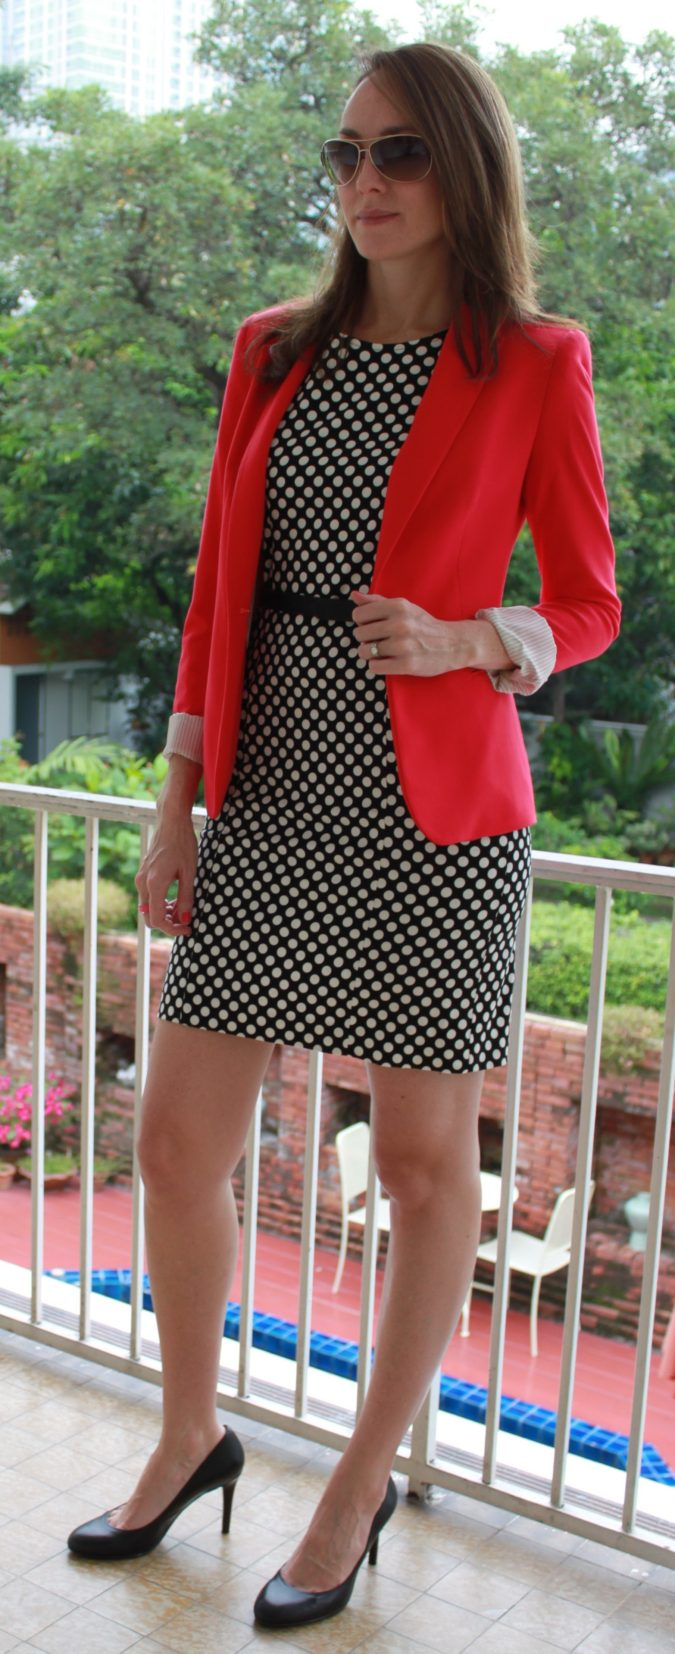 Black-White-and-Red-Outfit..-1-675x1654 +45 Stylish Women's Outfits for Job Interviews for 2021